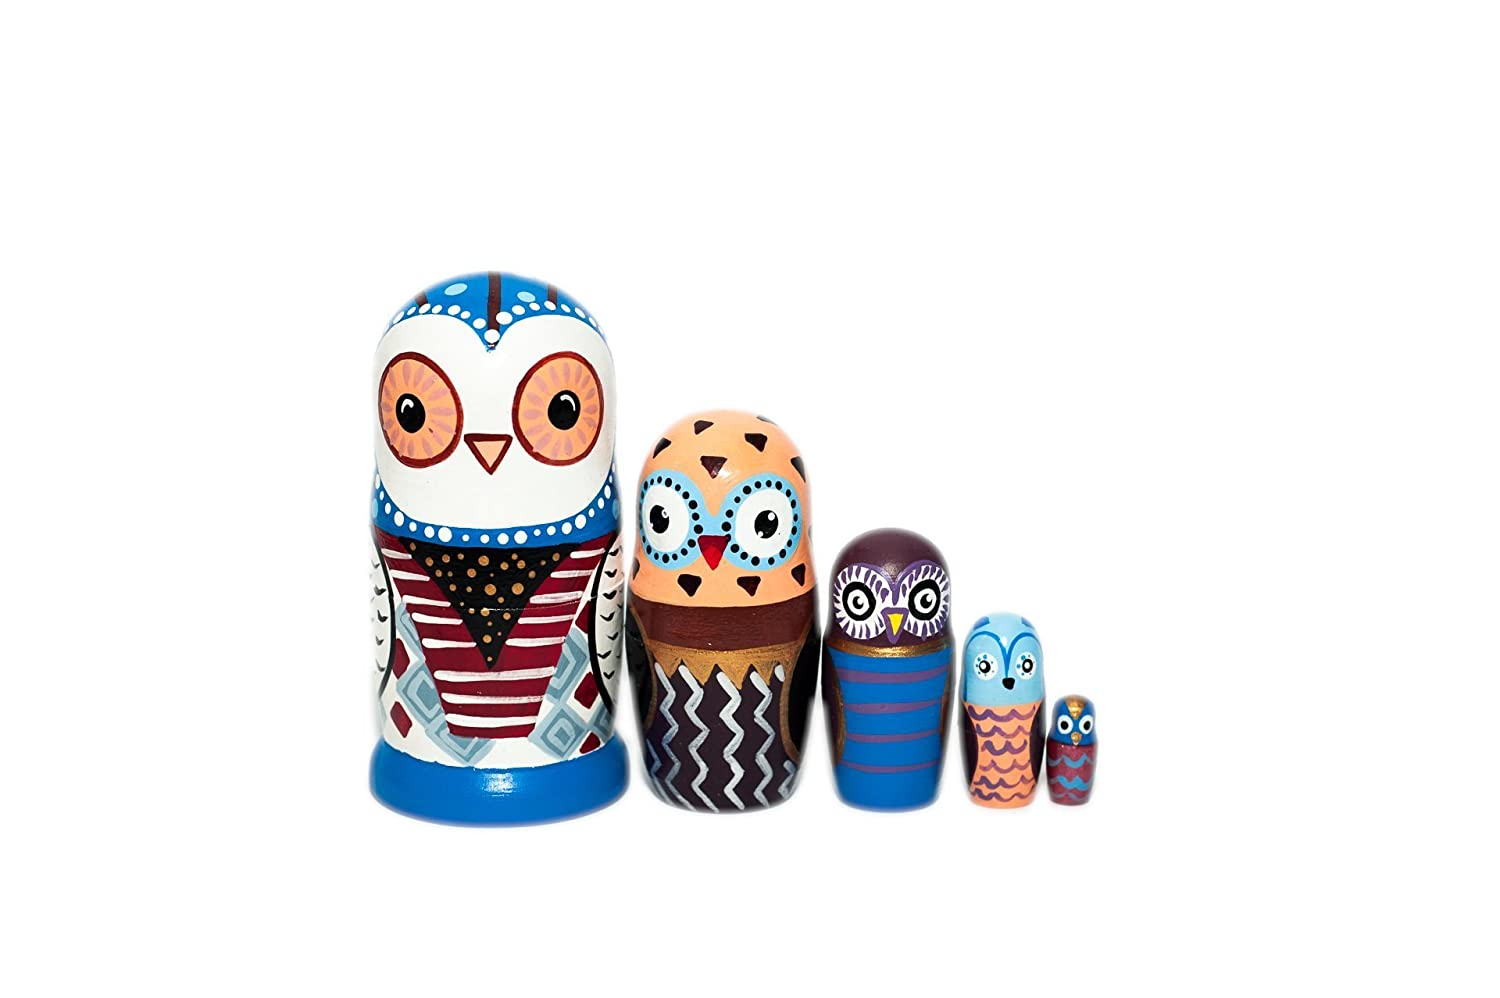 Owls Nesting dolls - Wooden dolls - Nesting dolls owl - Modern Owls - Montessori toy - Learning toy set